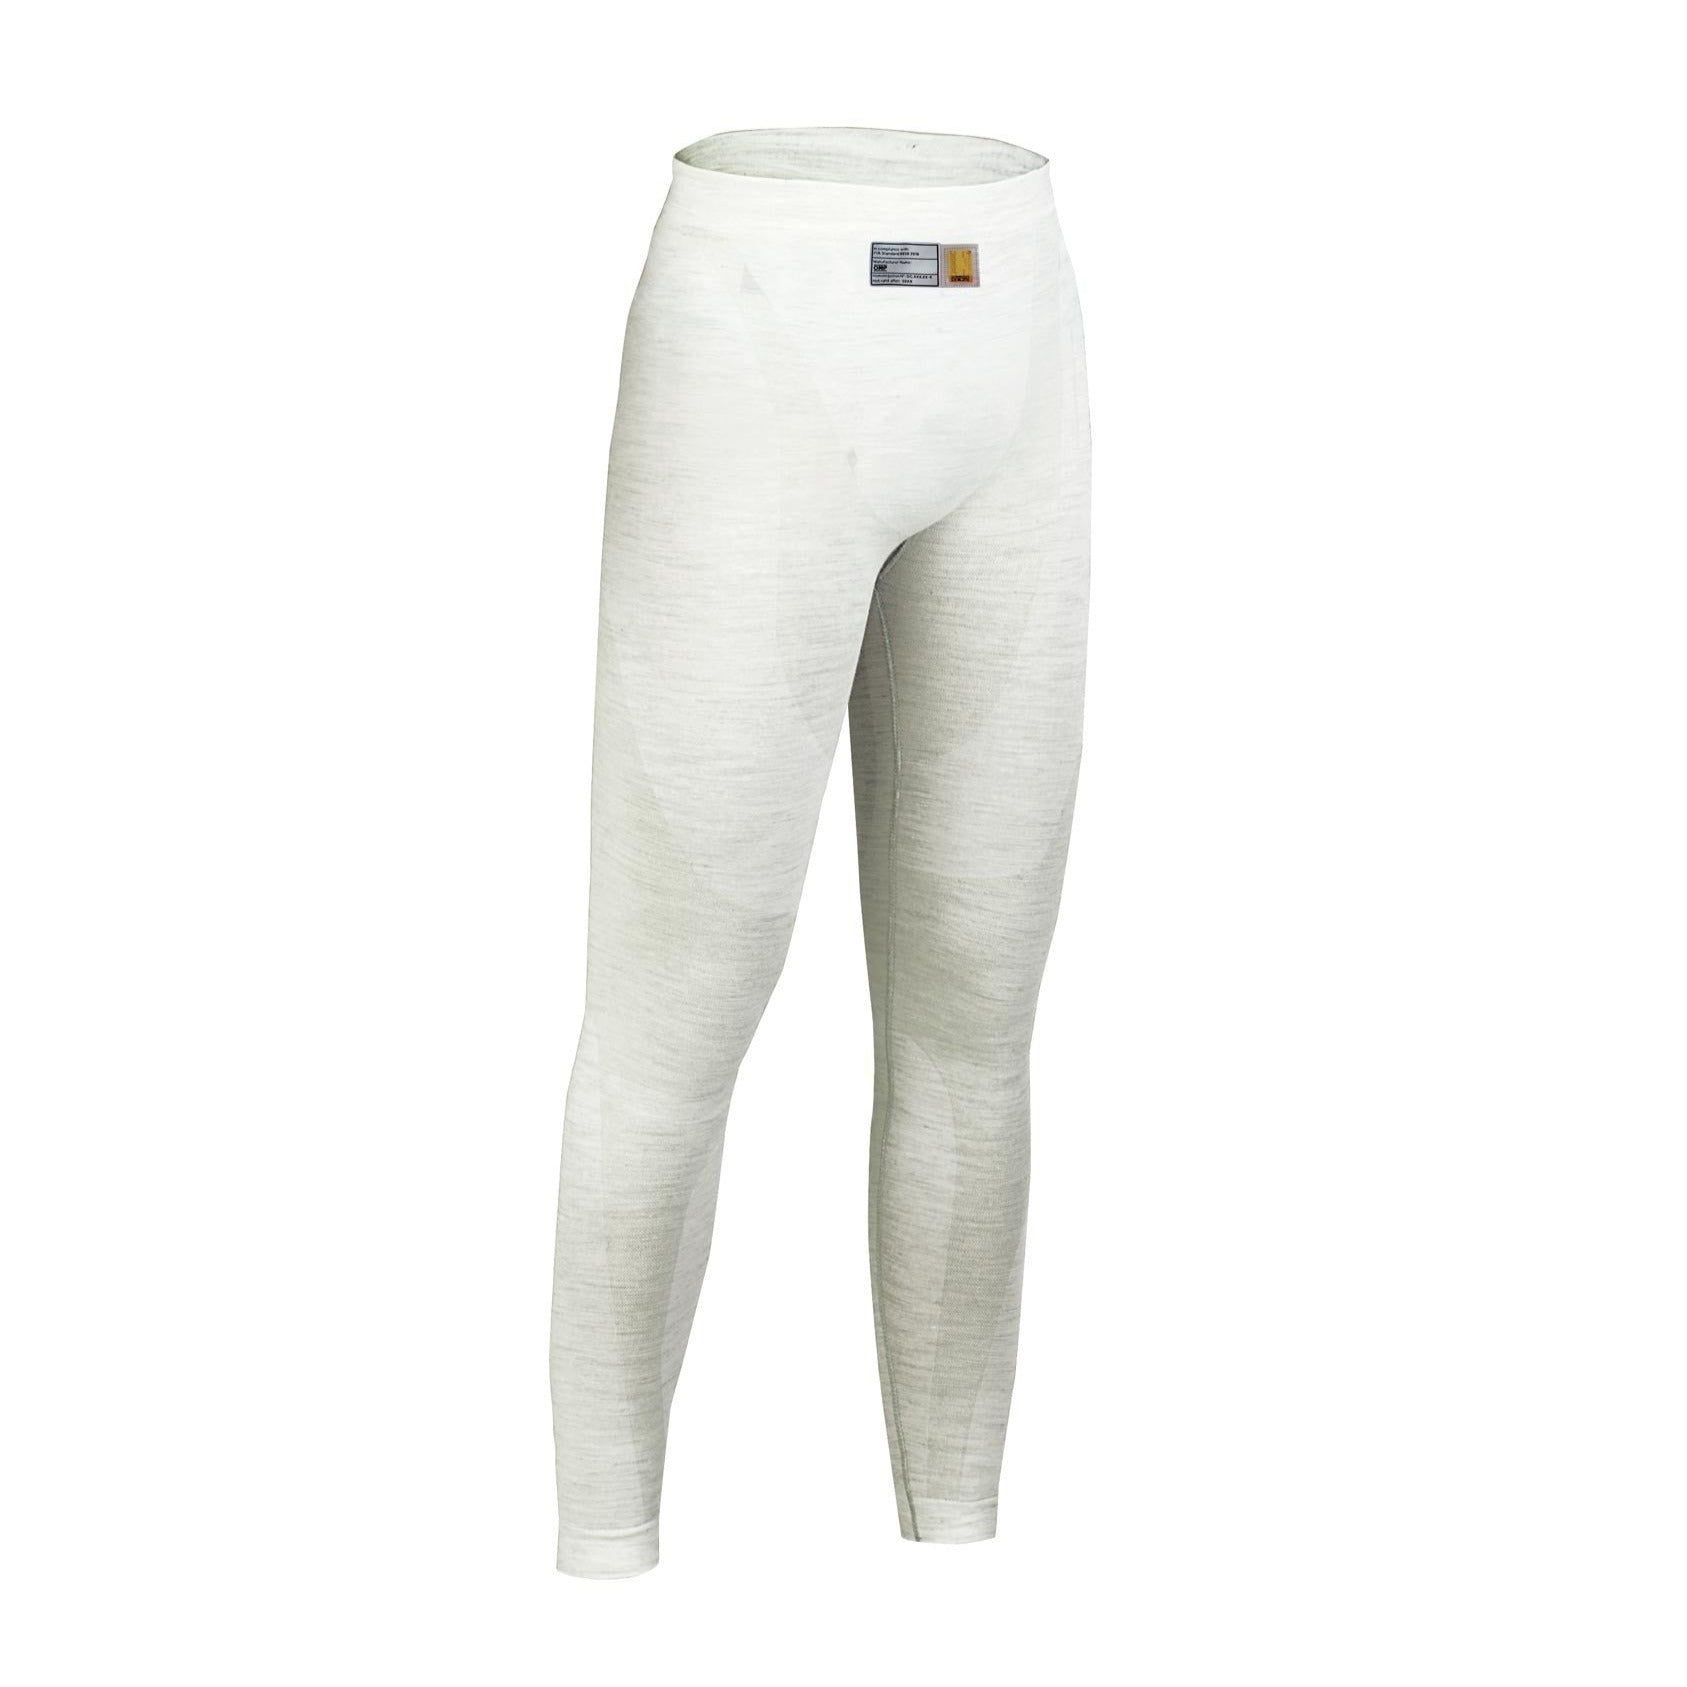 OMP One Pants - Saferacer